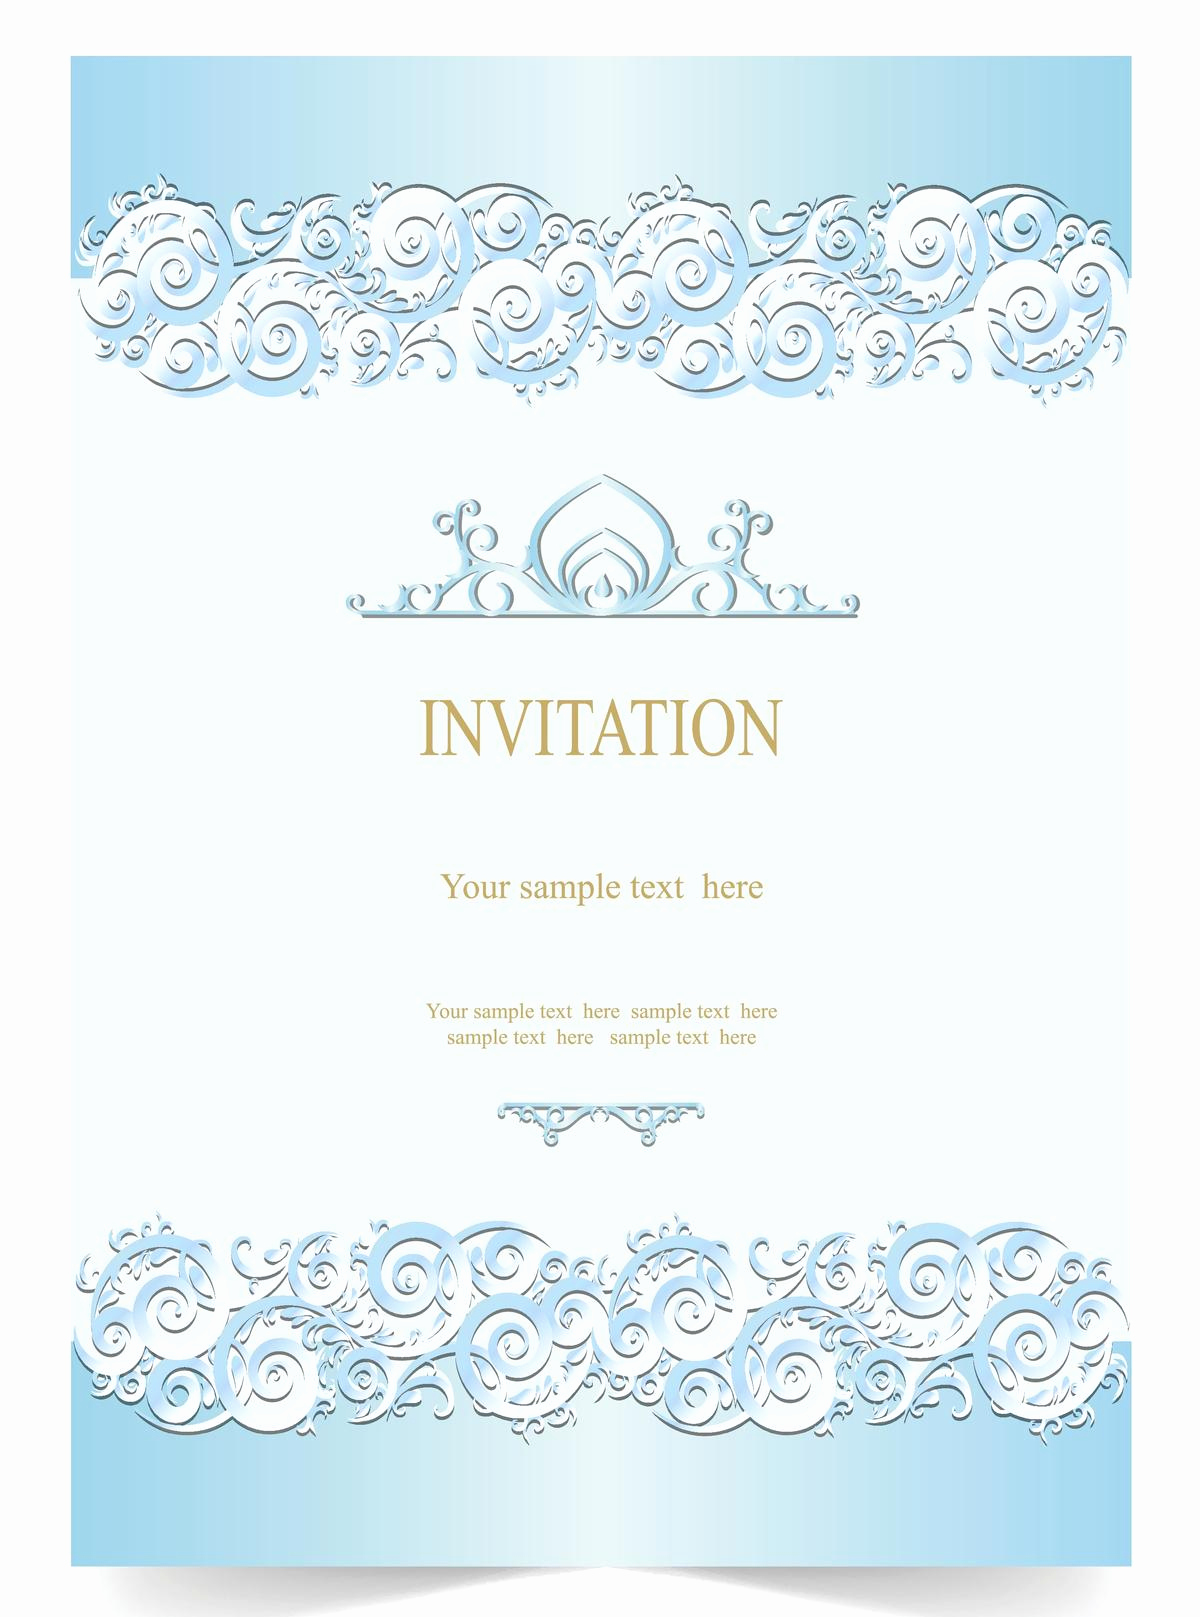 Formal Invitation to Follow Awesome Simple Etiquette Guidelines to Write formal Invitation Wording